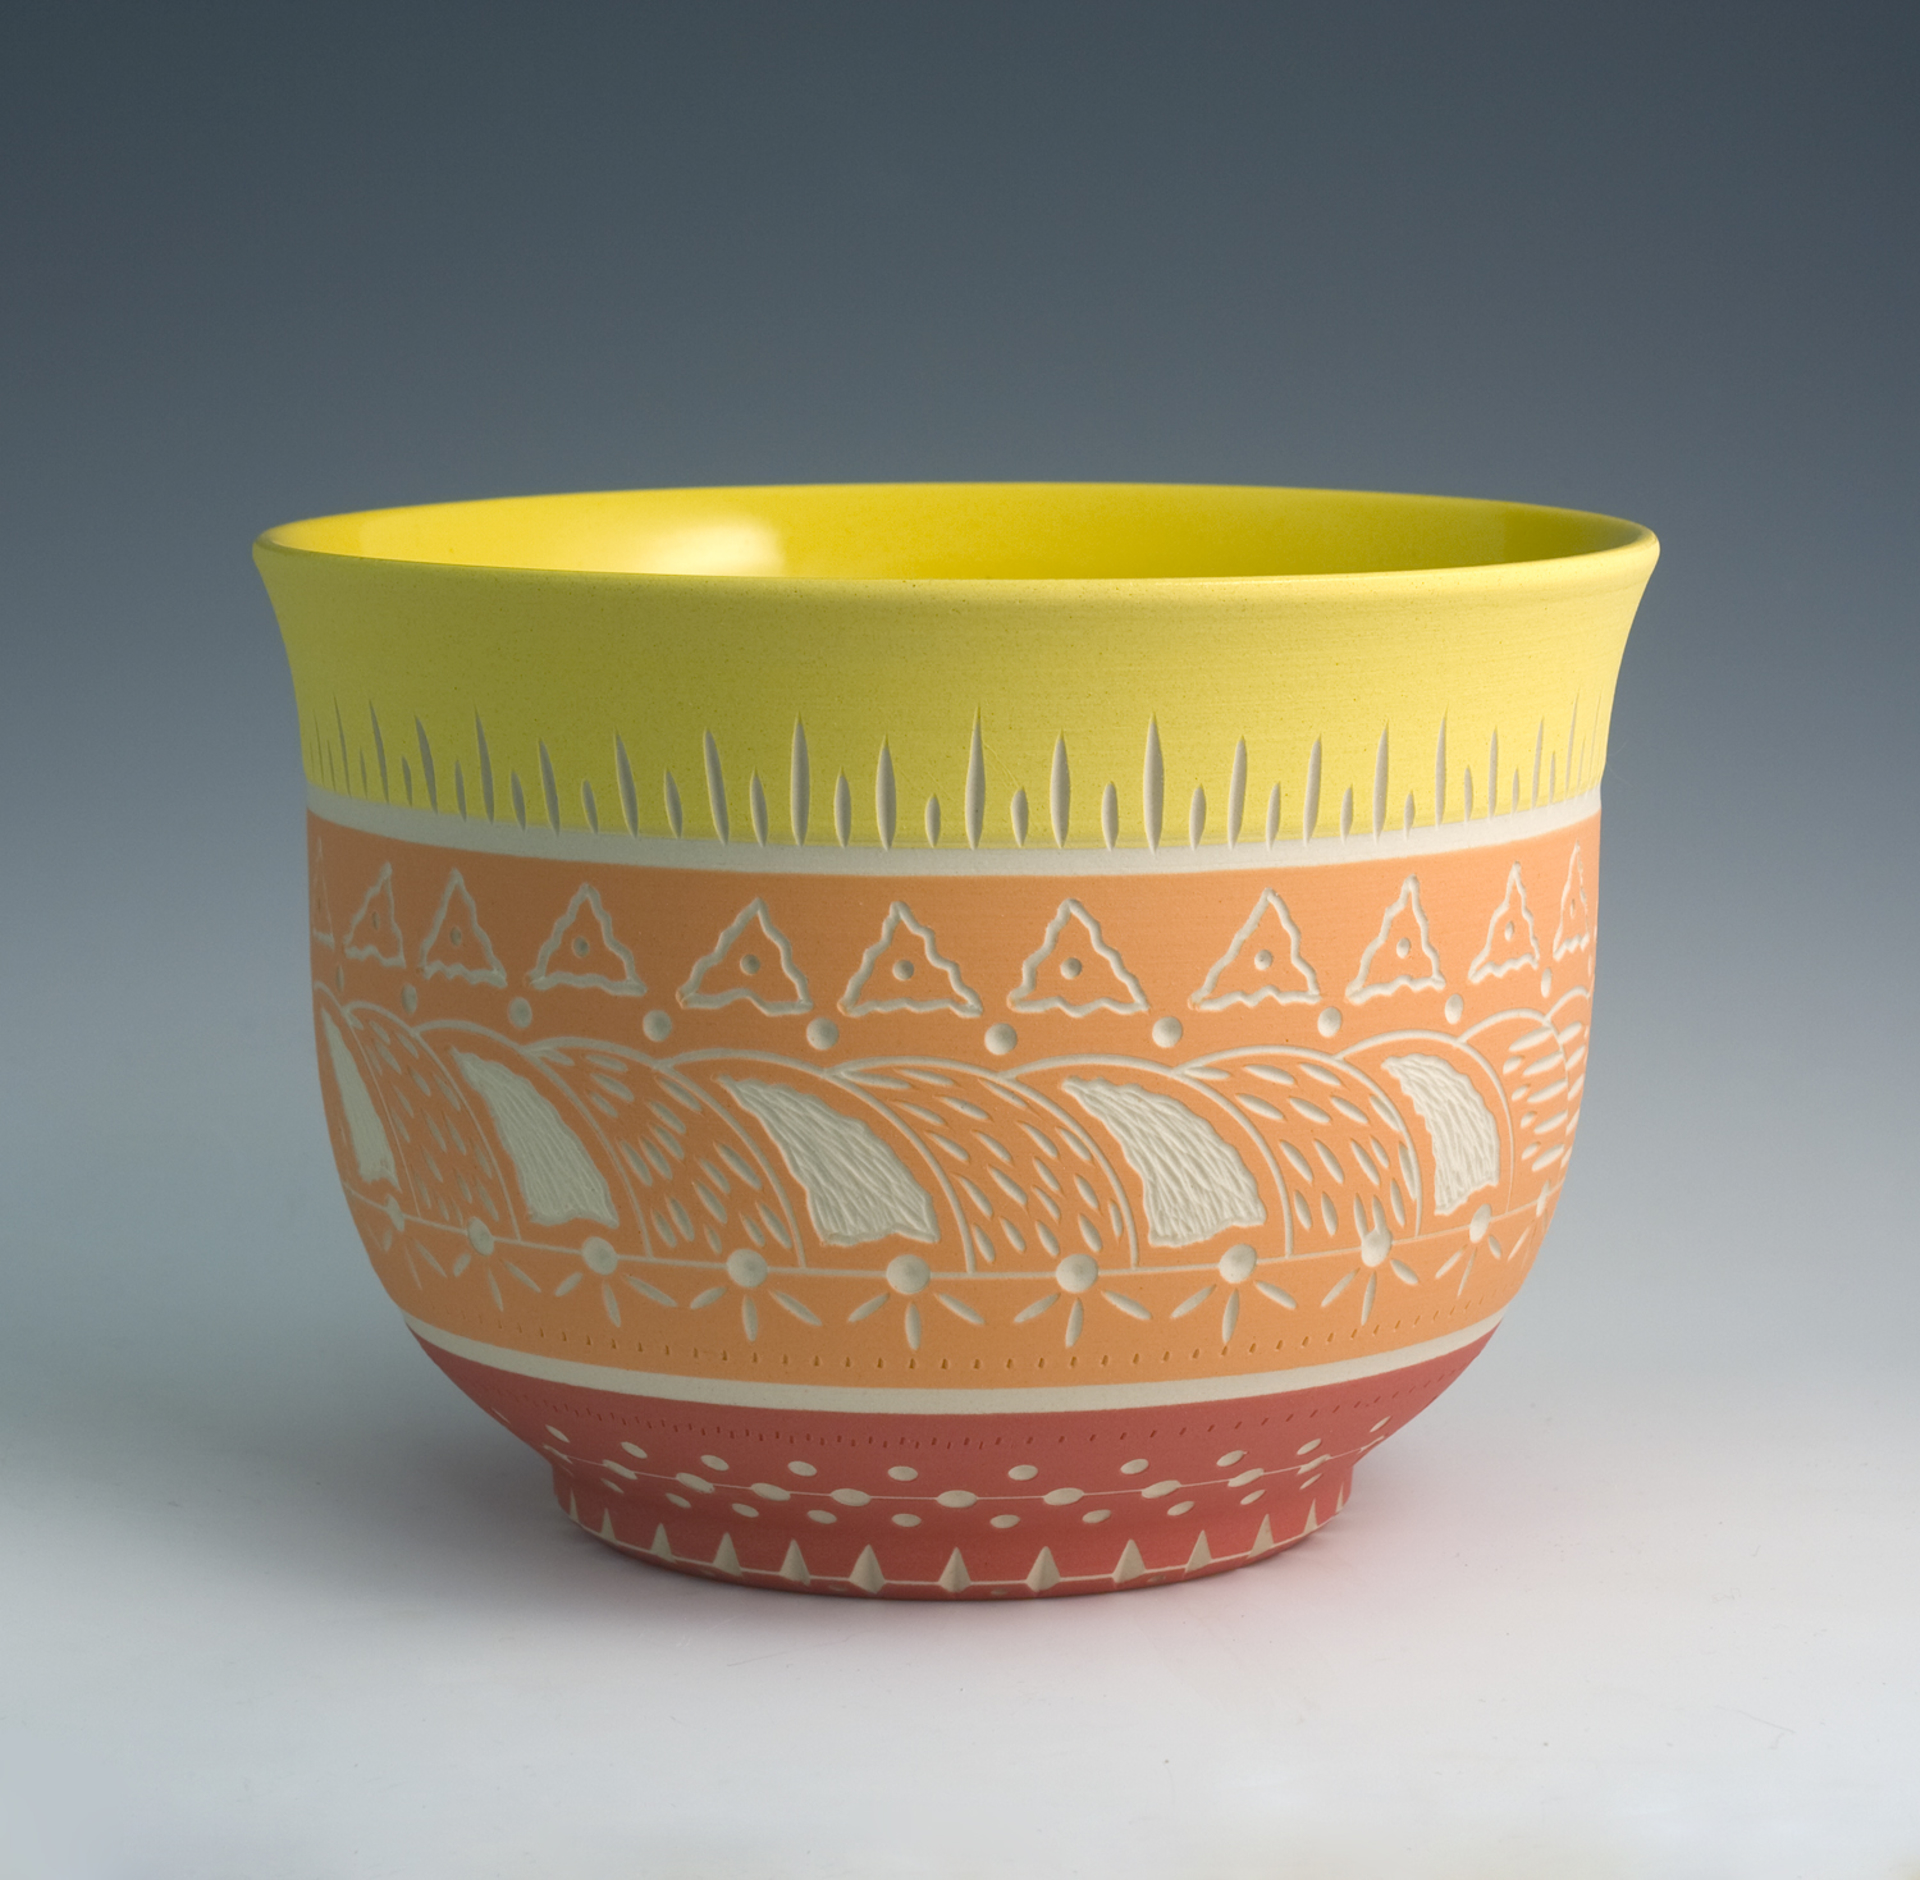 Bowl (Yellow/Orange) by Chris Casey